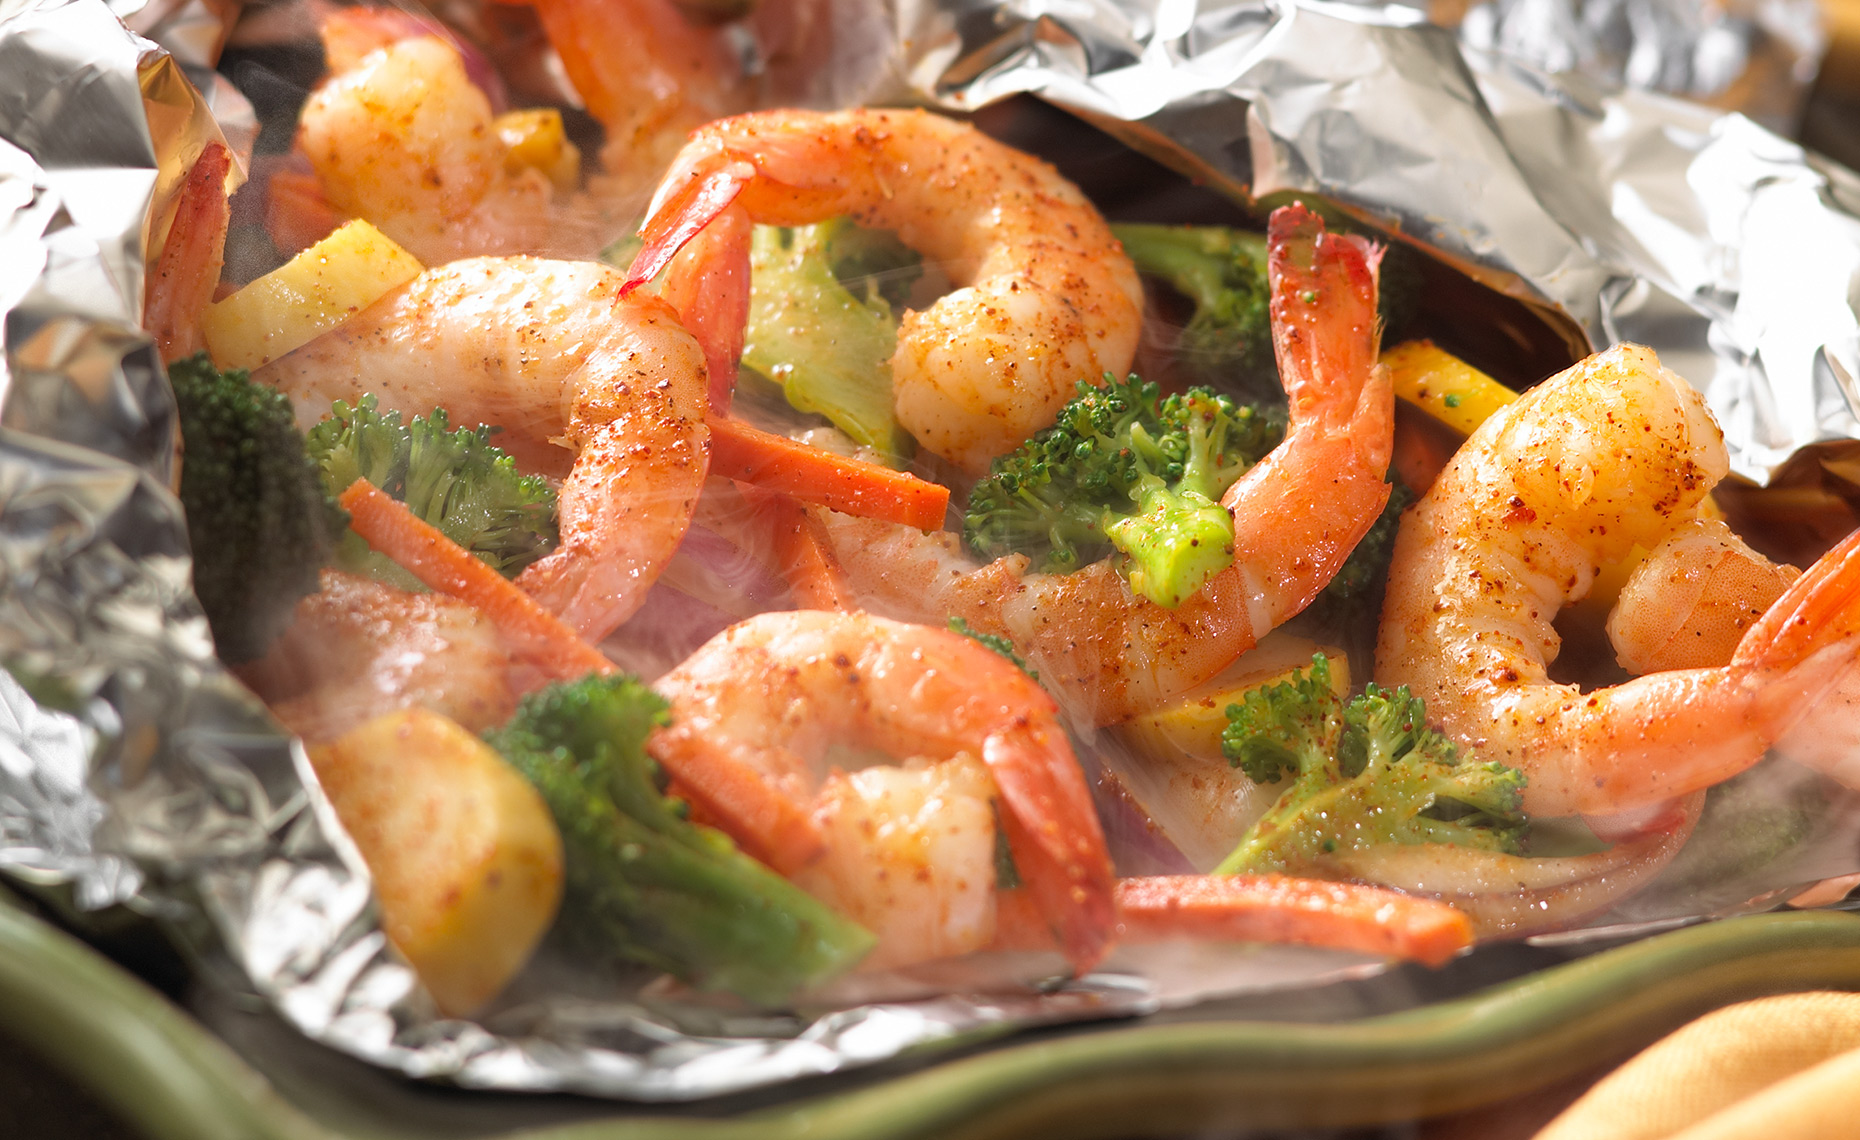 Food Photographer, Seafood Photography | Pohuski Studios,  Steamed Shrimp Foil